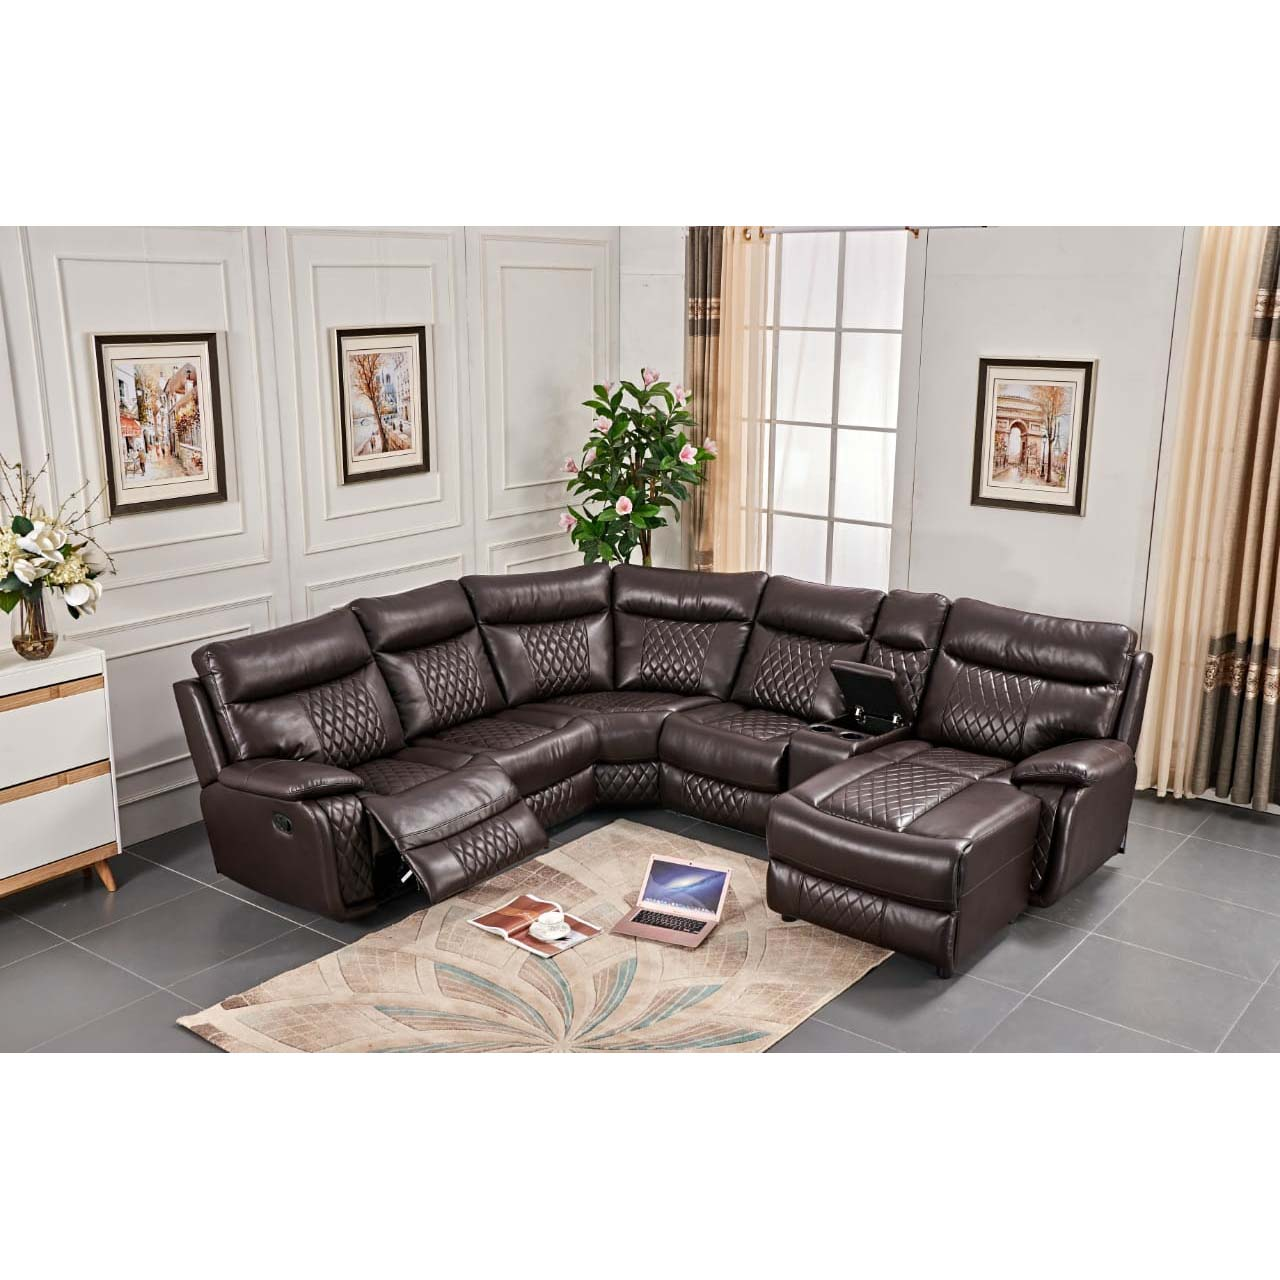 France Diamond Back – Leather Air – 1 Action Recliner With Day Bed